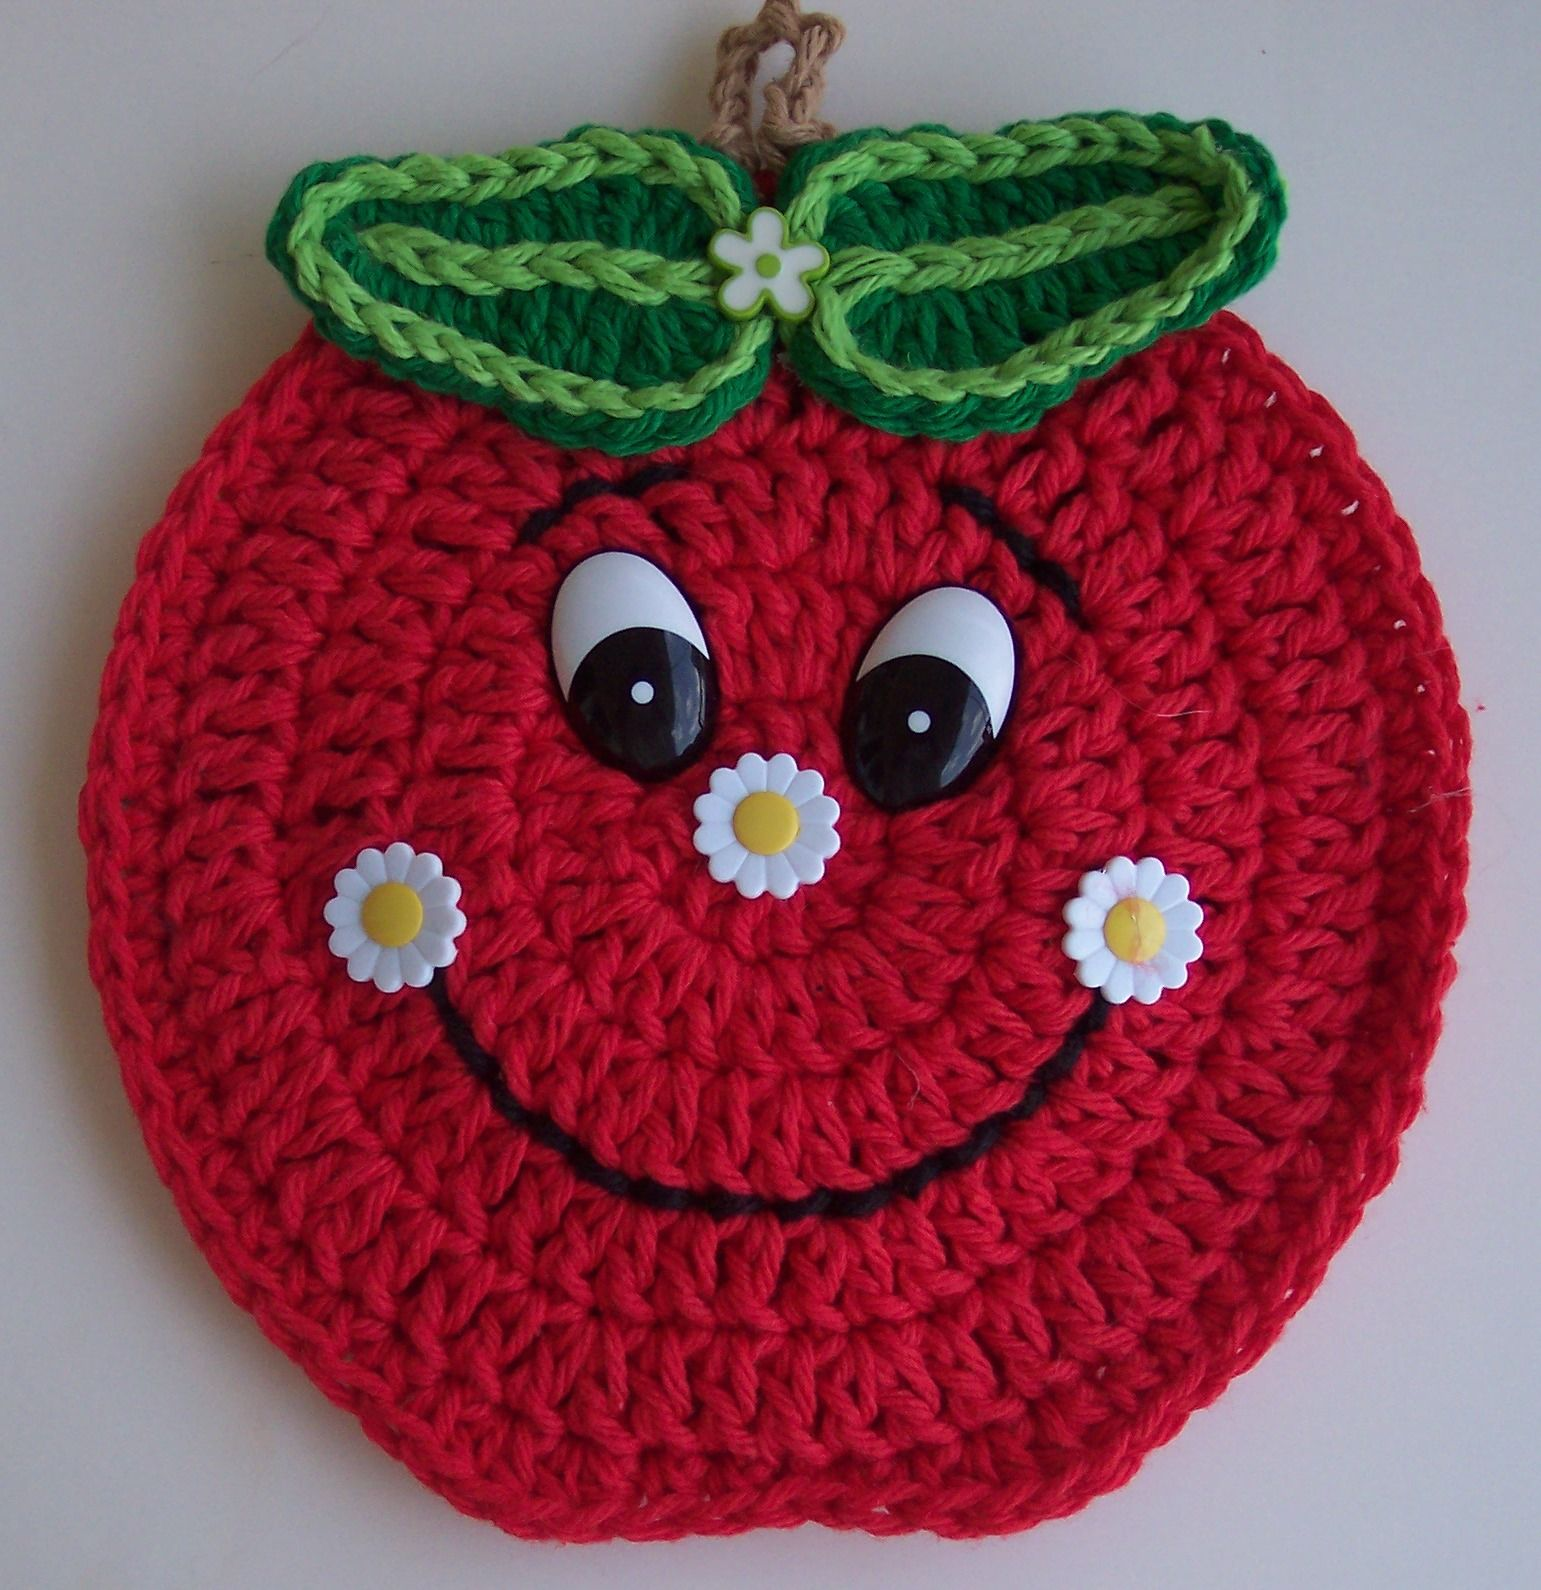 Cute Crochet Apple Potholder! Use photo for inspiration (no pattern ...